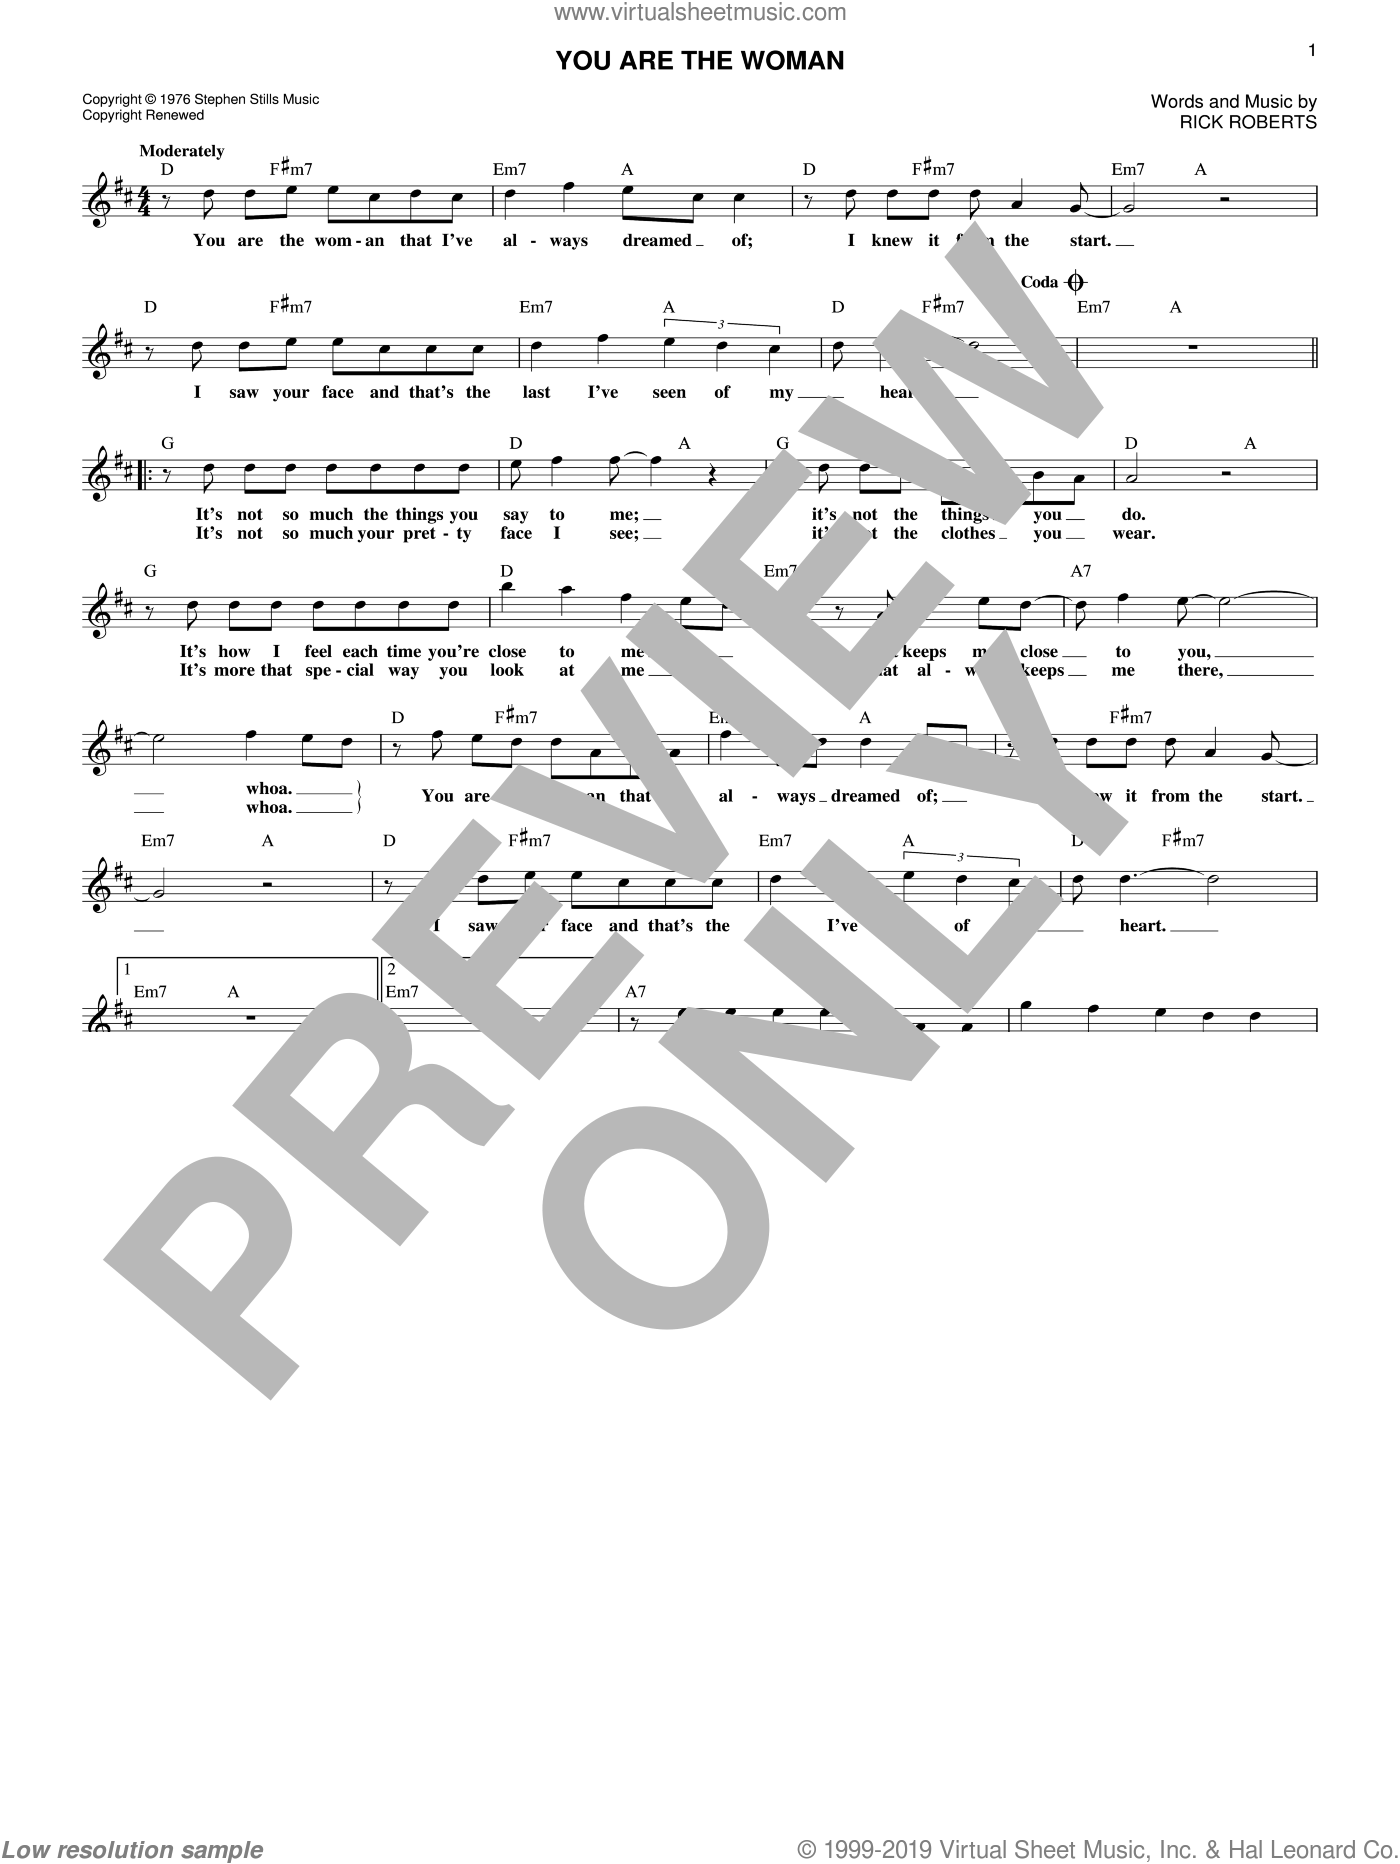 You Are The Woman sheet music for voice and other instruments (fake book) by Rick Roberts. Score Image Preview.